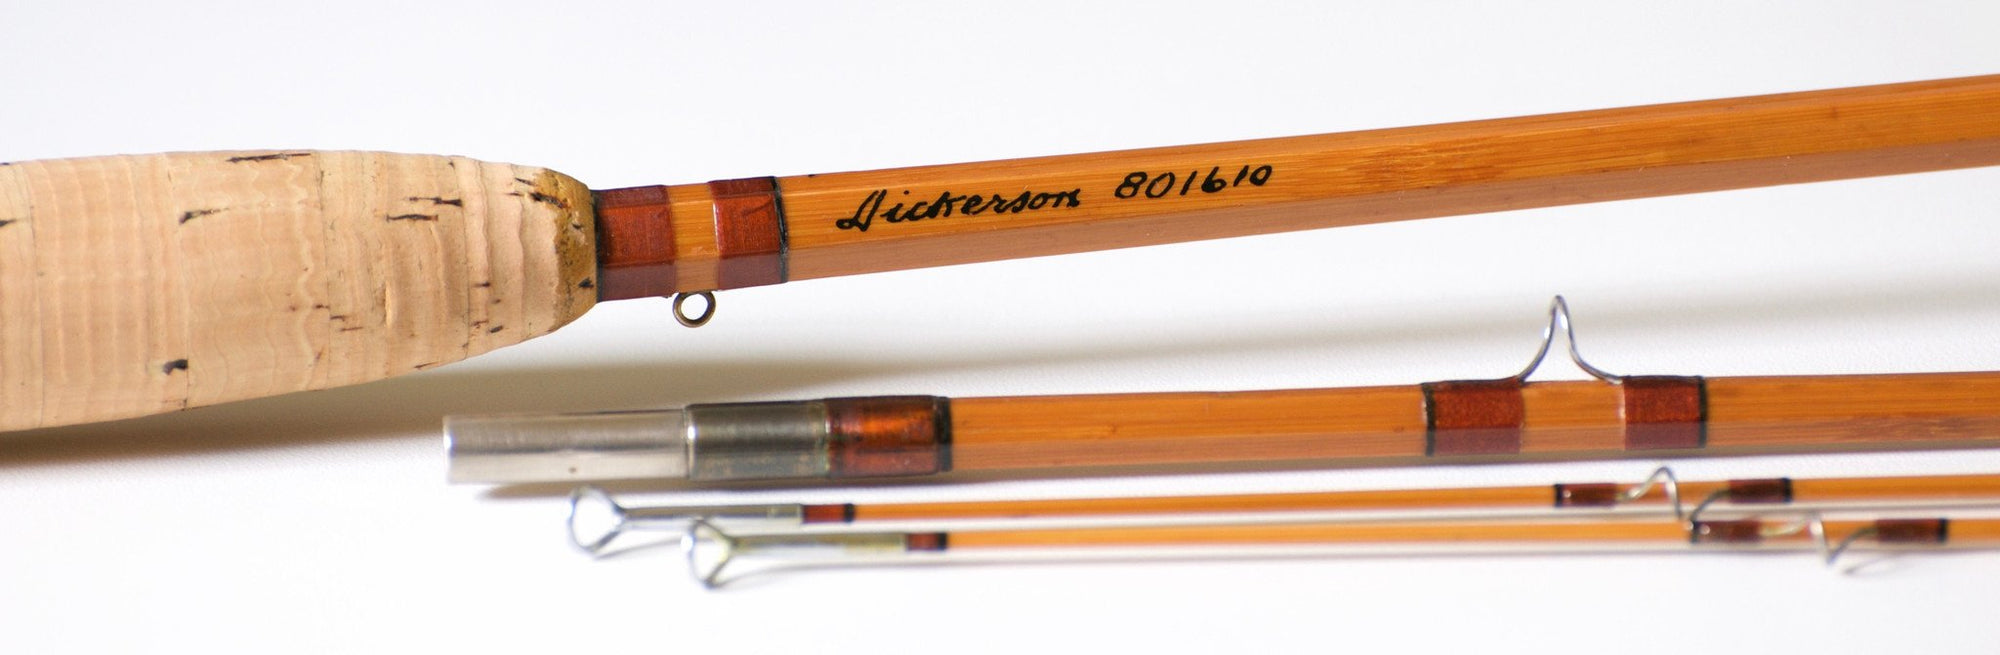 Lyle Dickerson -- Model 801610 Bamboo Rod